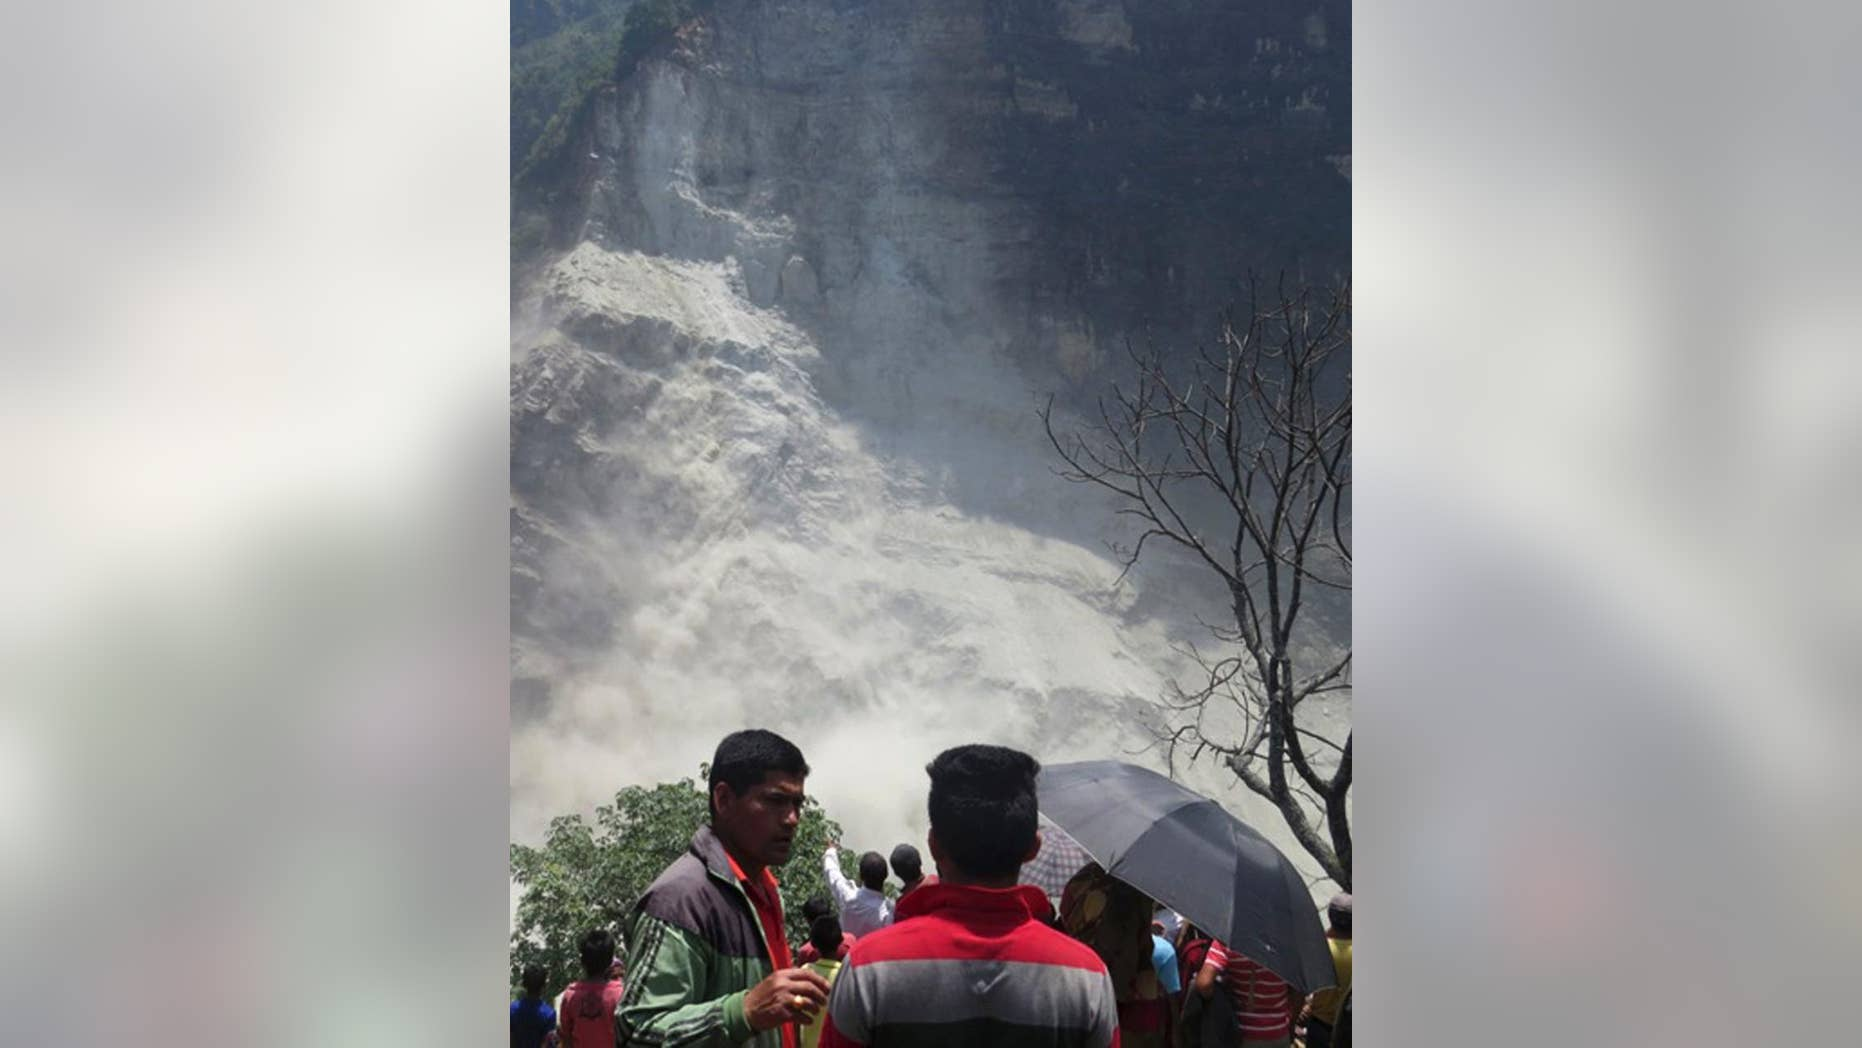 People gather at the site of a landslide north of Beni Bazaar, Nepal, Sunday, May 24, 2015. Thousands of people fled villages and towns along a mountain river in northwest Nepal on Sunday after it was blocked by a landslide that could burst and cause flash floods, officials said. (AP Photo/M.B. Astha)